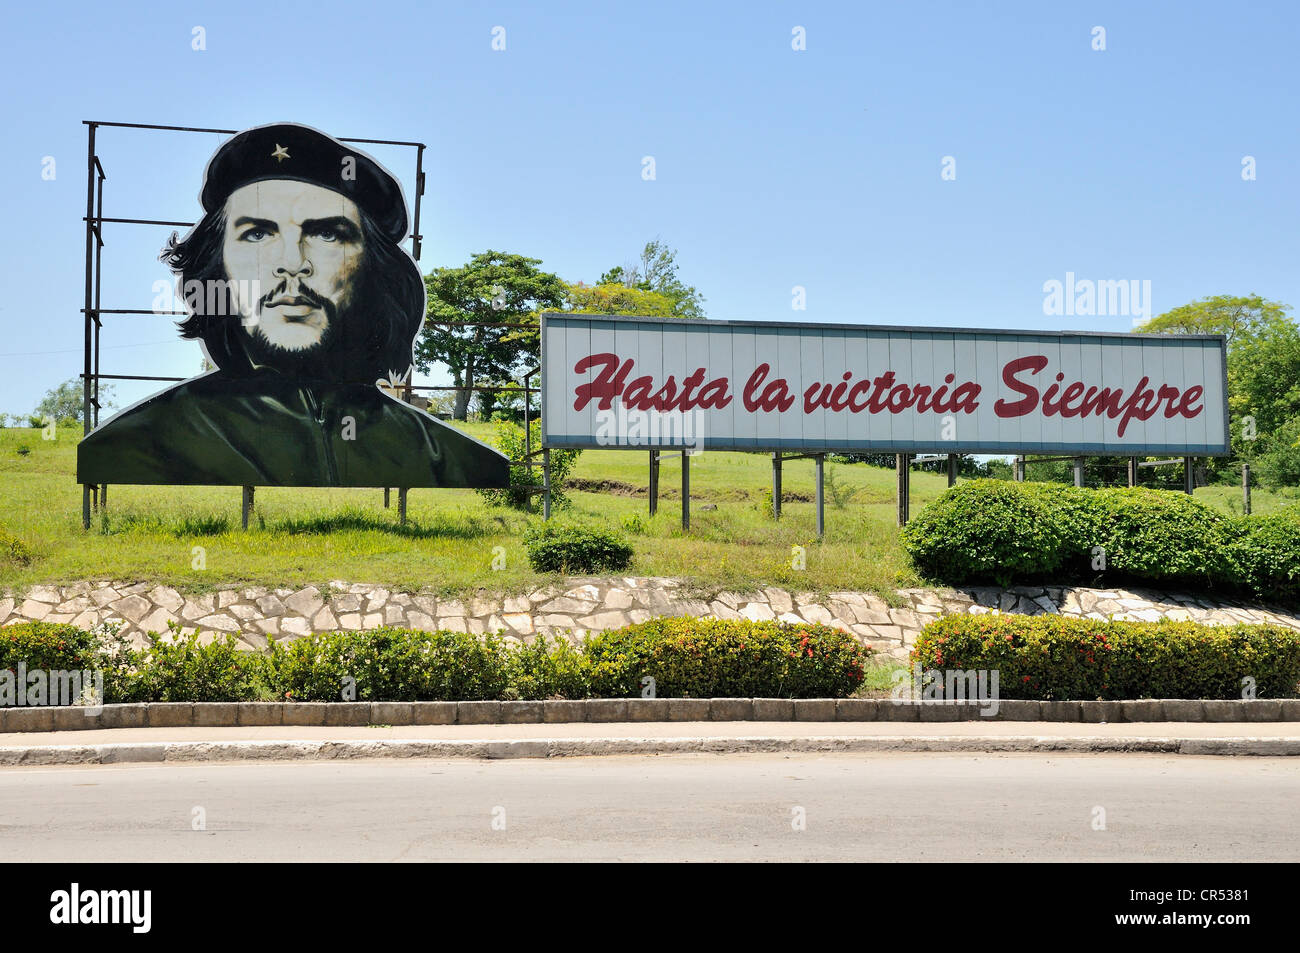 Revolutionary propaganda, 'Hasta la victoria siempre', Spanish for 'ever onward to victory' with - Stock Image